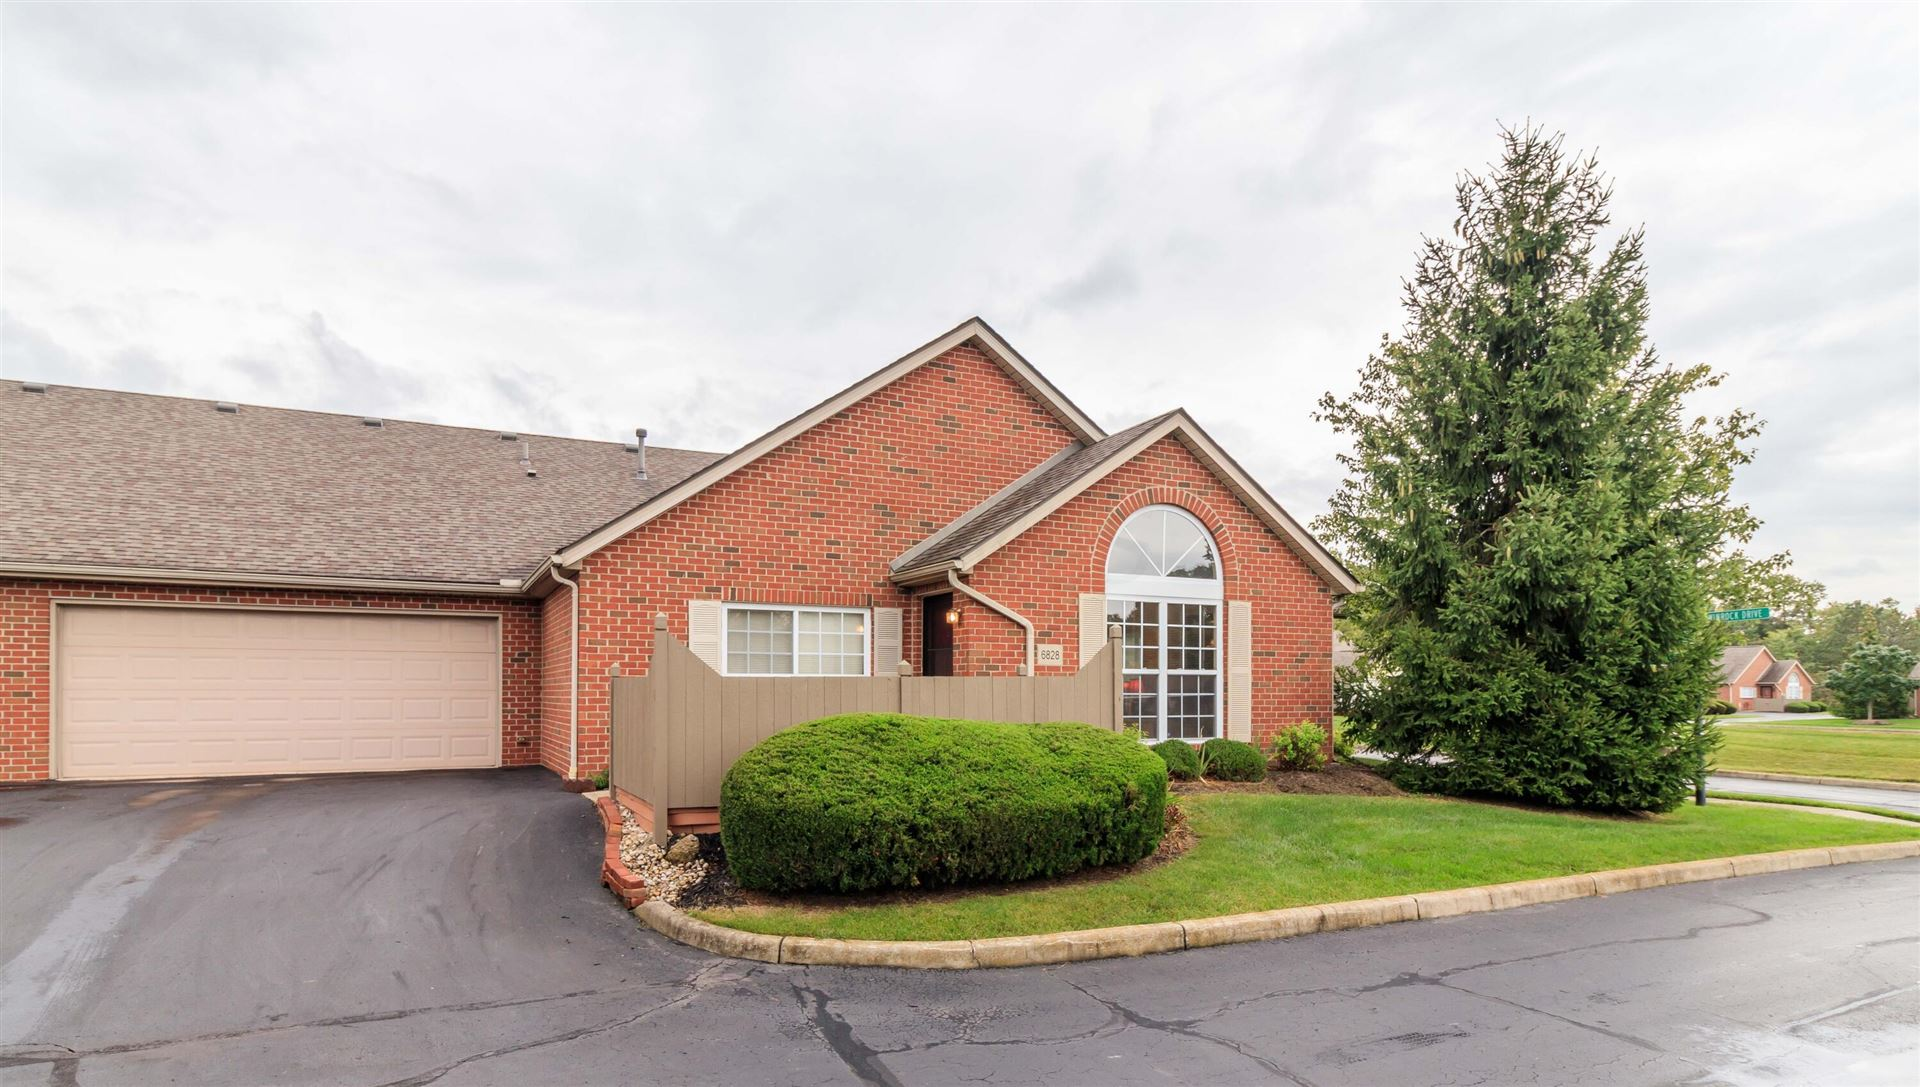 Photo of 6828 Winrock Drive #6-6828, New Albany, OH 43054 (MLS # 221040324)